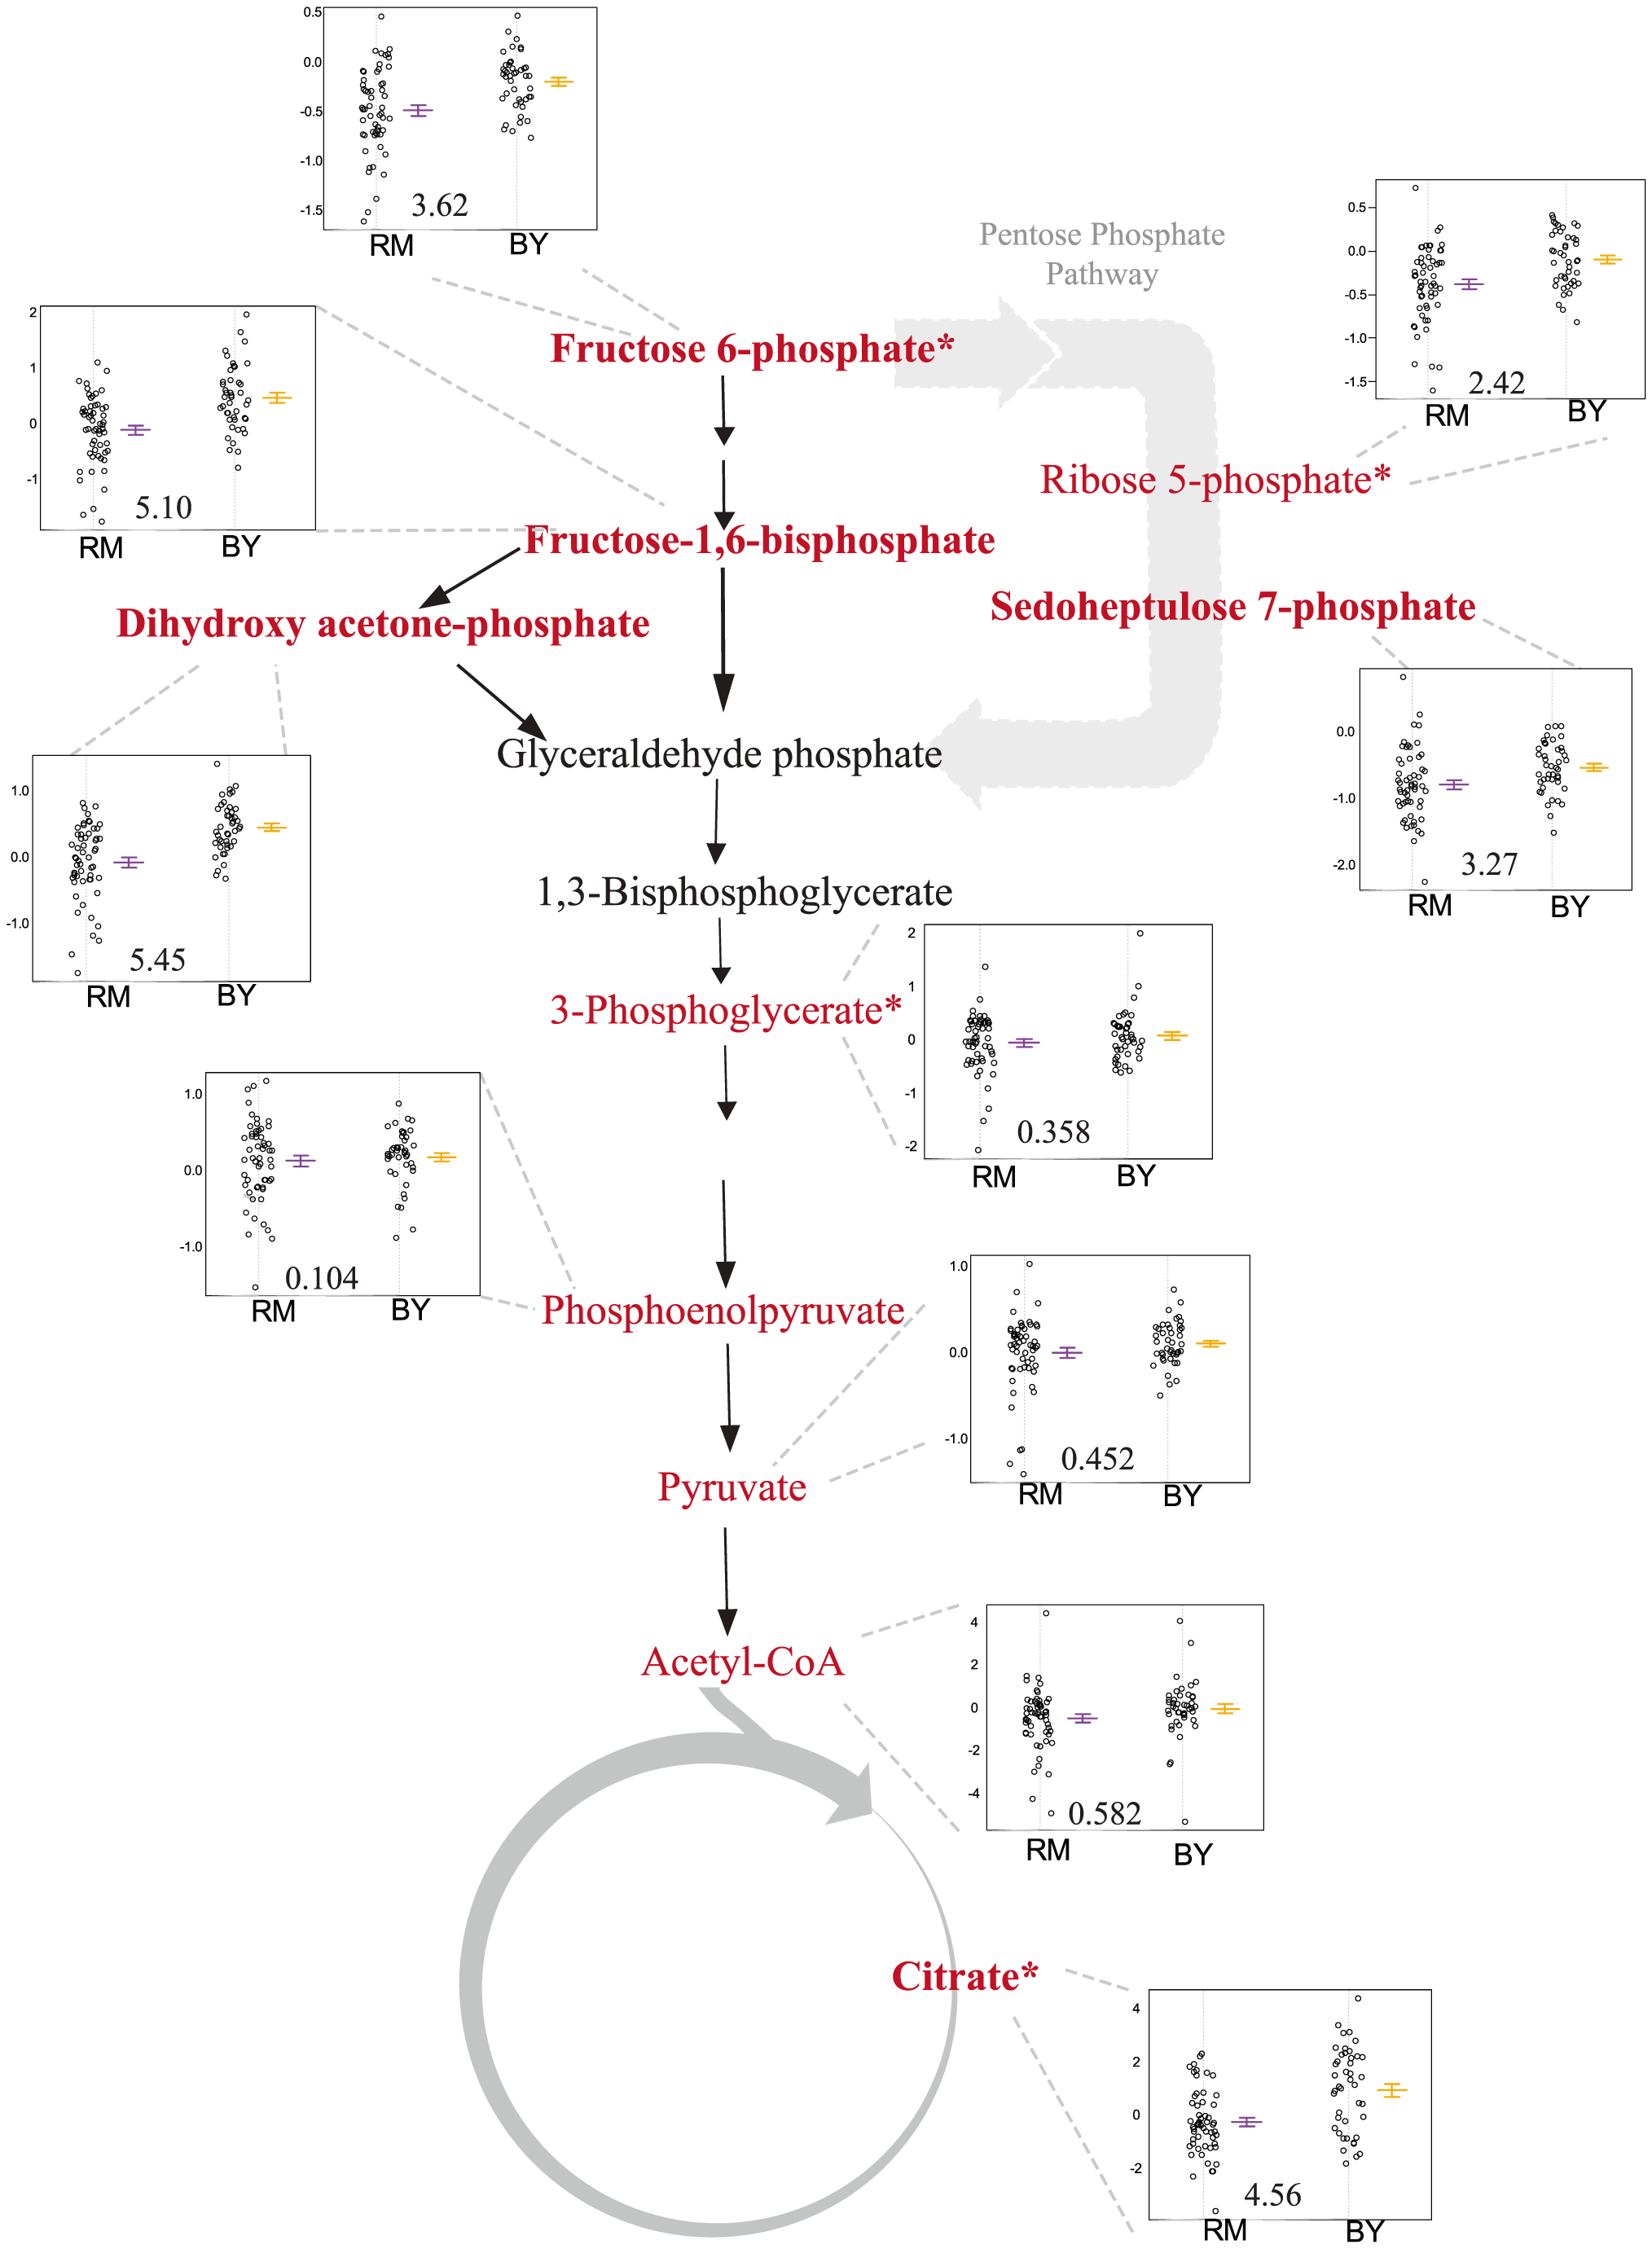 Levels of glycolysis, pentose phosphate pathway and TCA intermediates differ based on the <i>ira2</i> allele inherited.